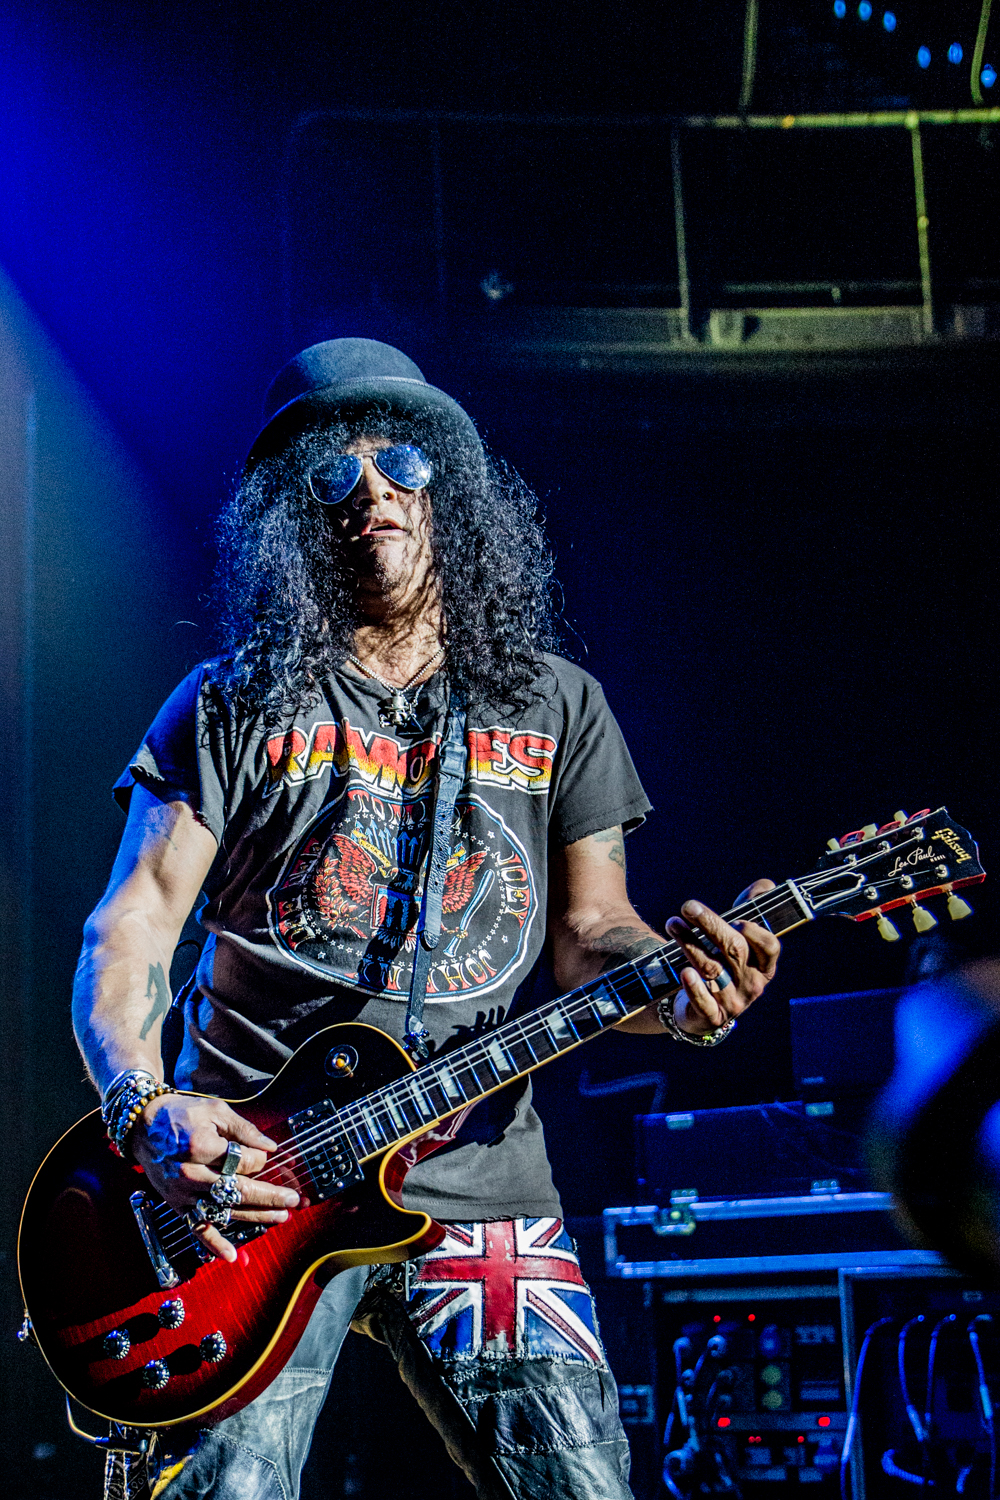 20190223_Slash ft. Myles Kennedy and The Conspirators_Koninklijk Circus-7